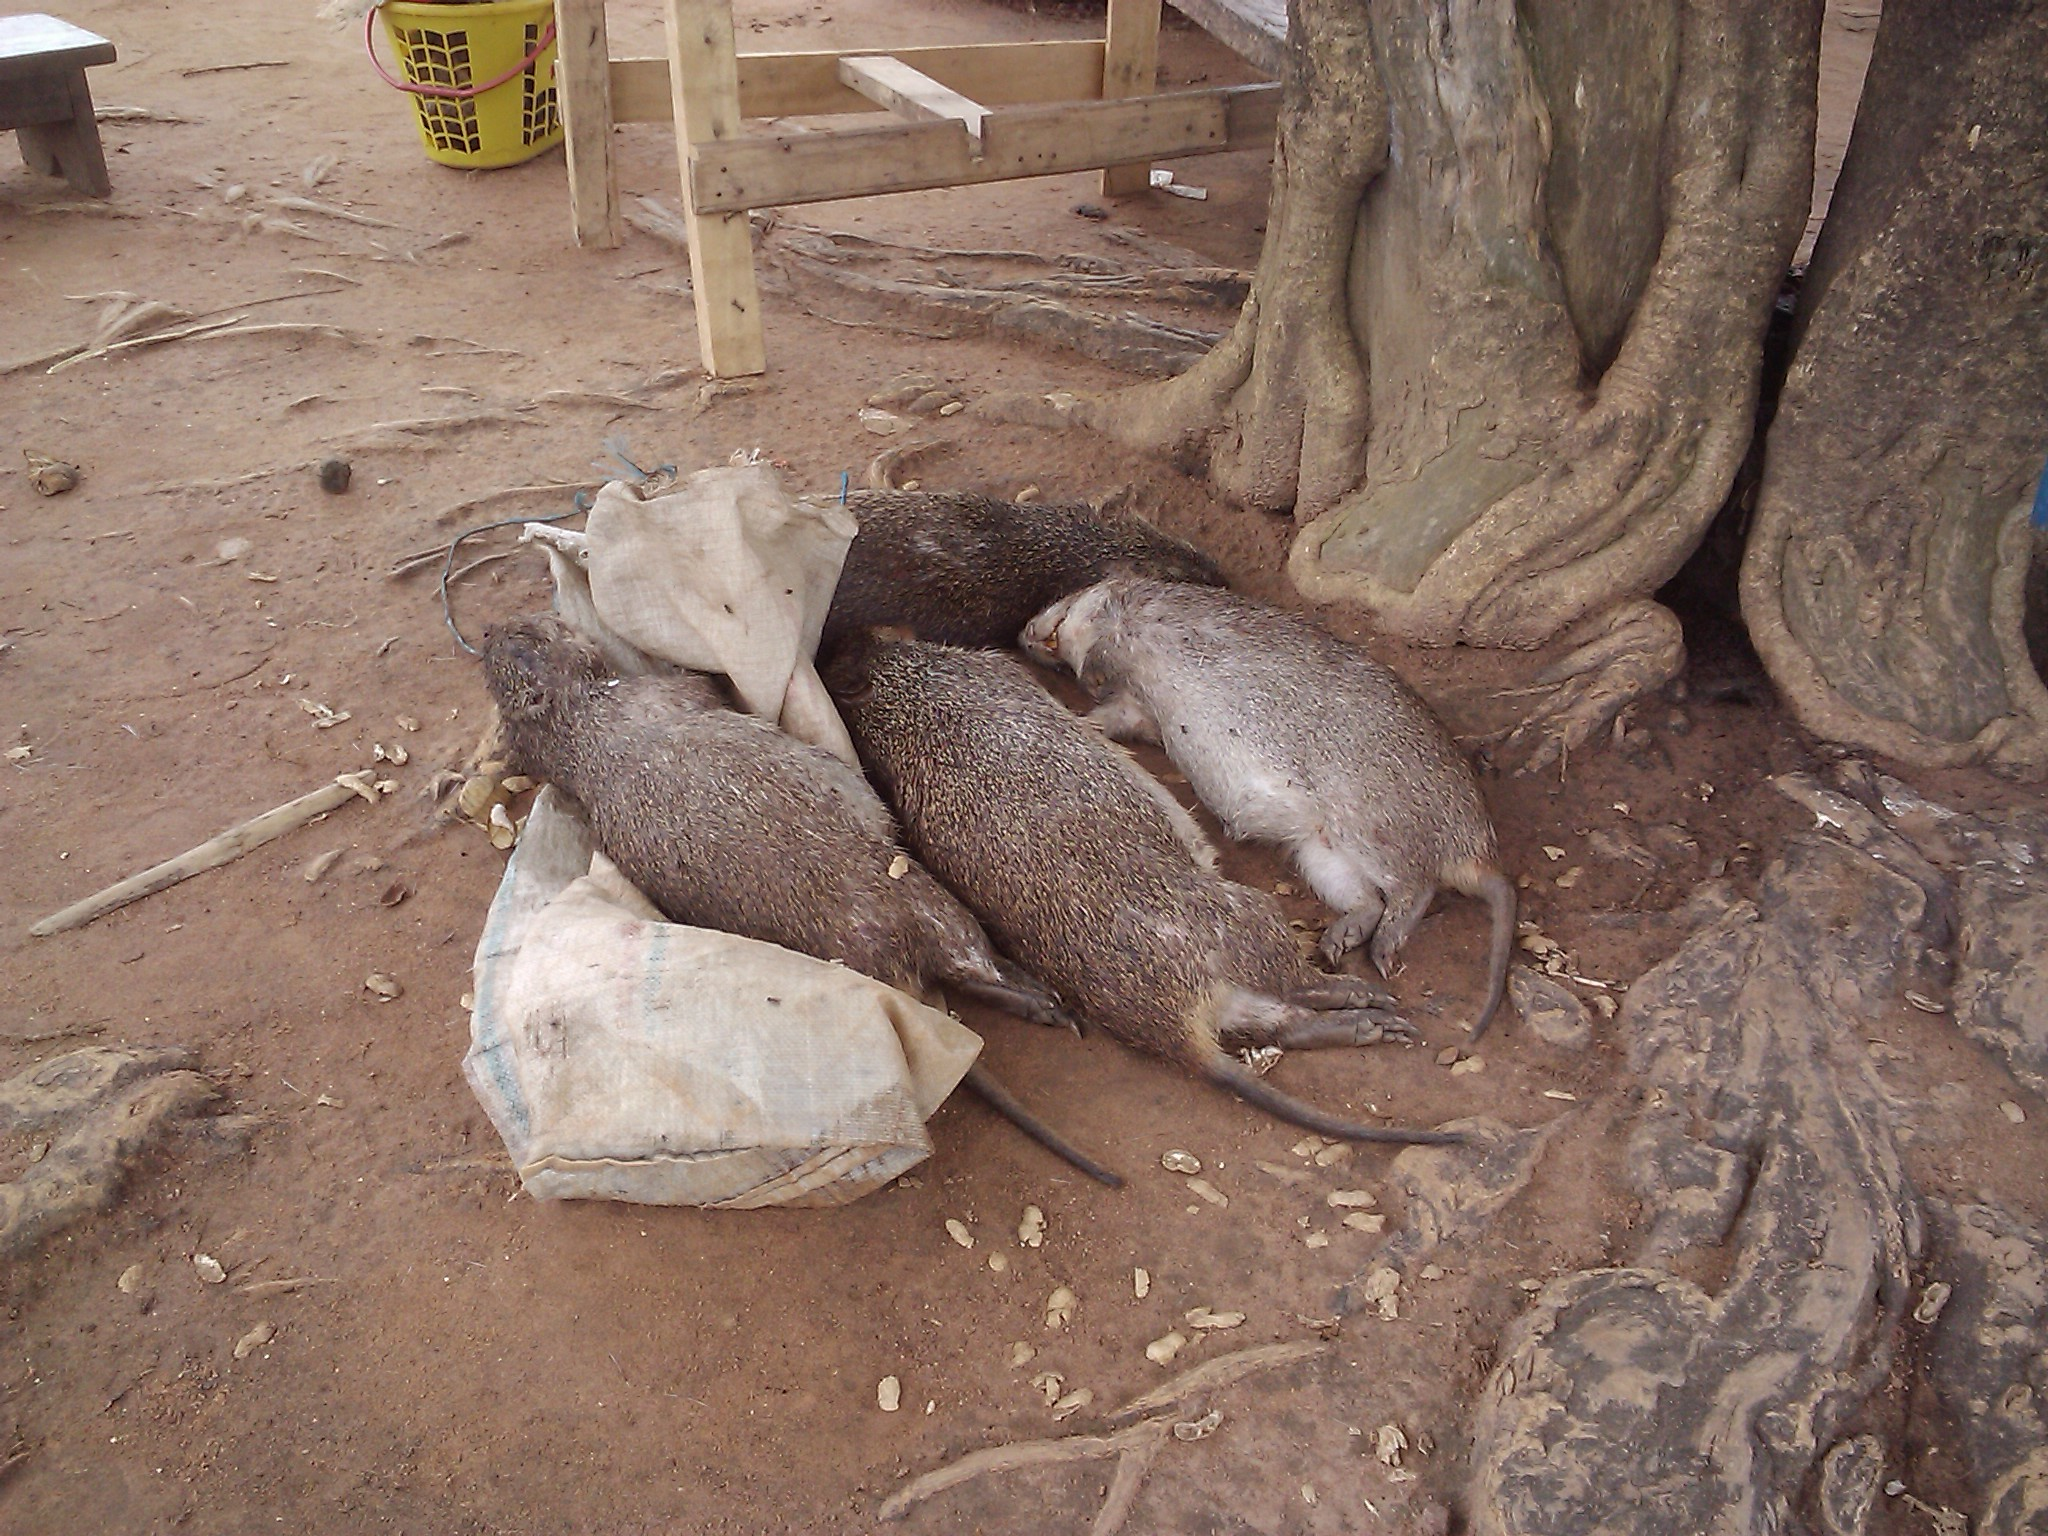 Image of Greater Cane Rat